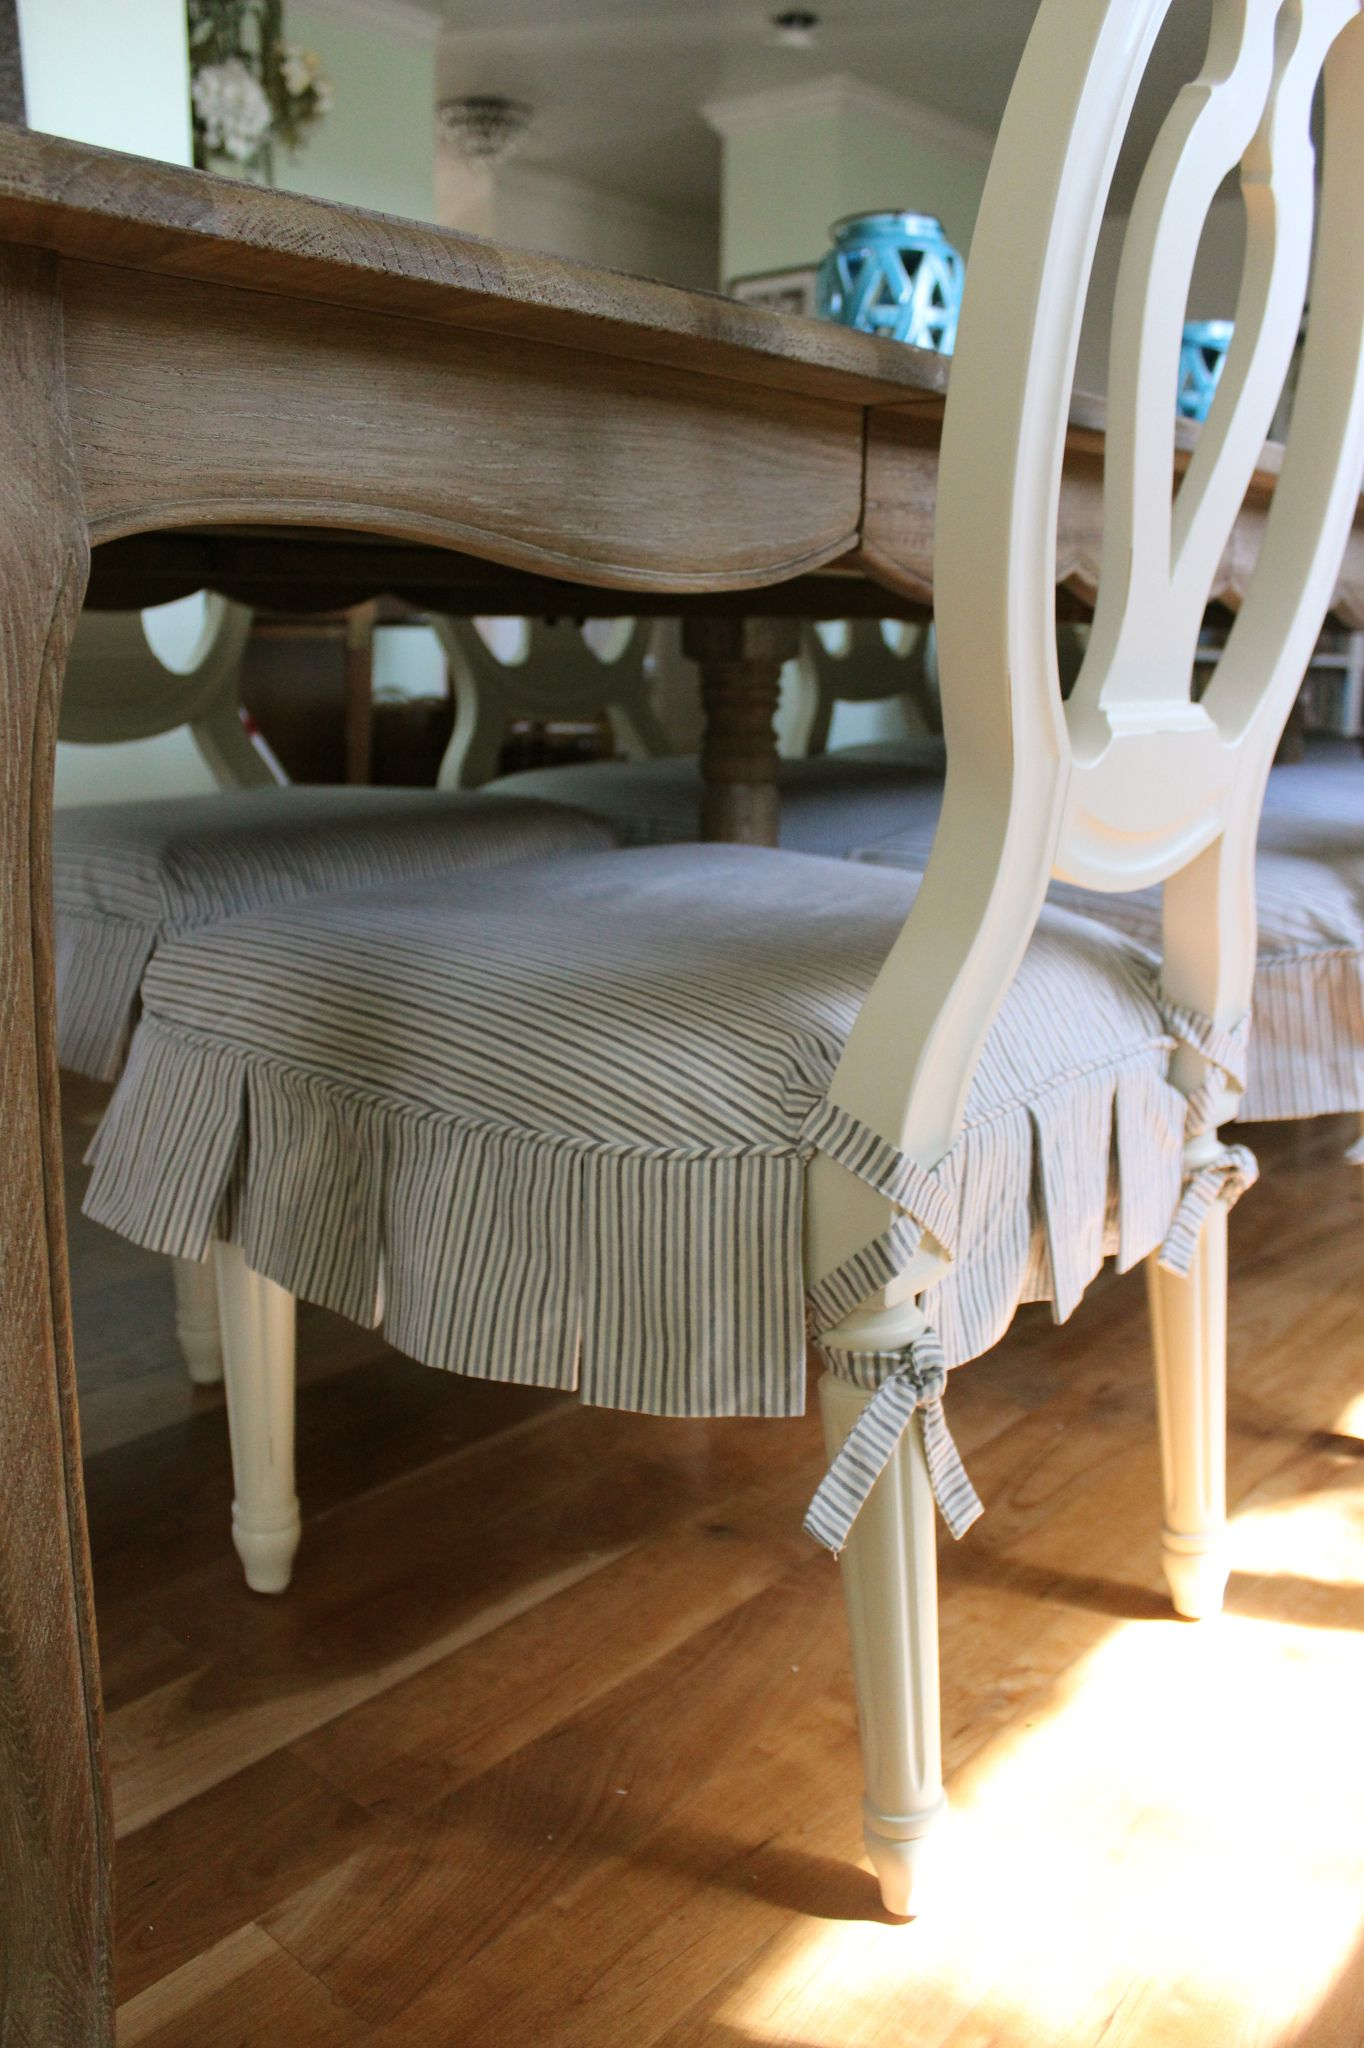 Ballerina tie dining chair Slipcovers for chairs, Dining